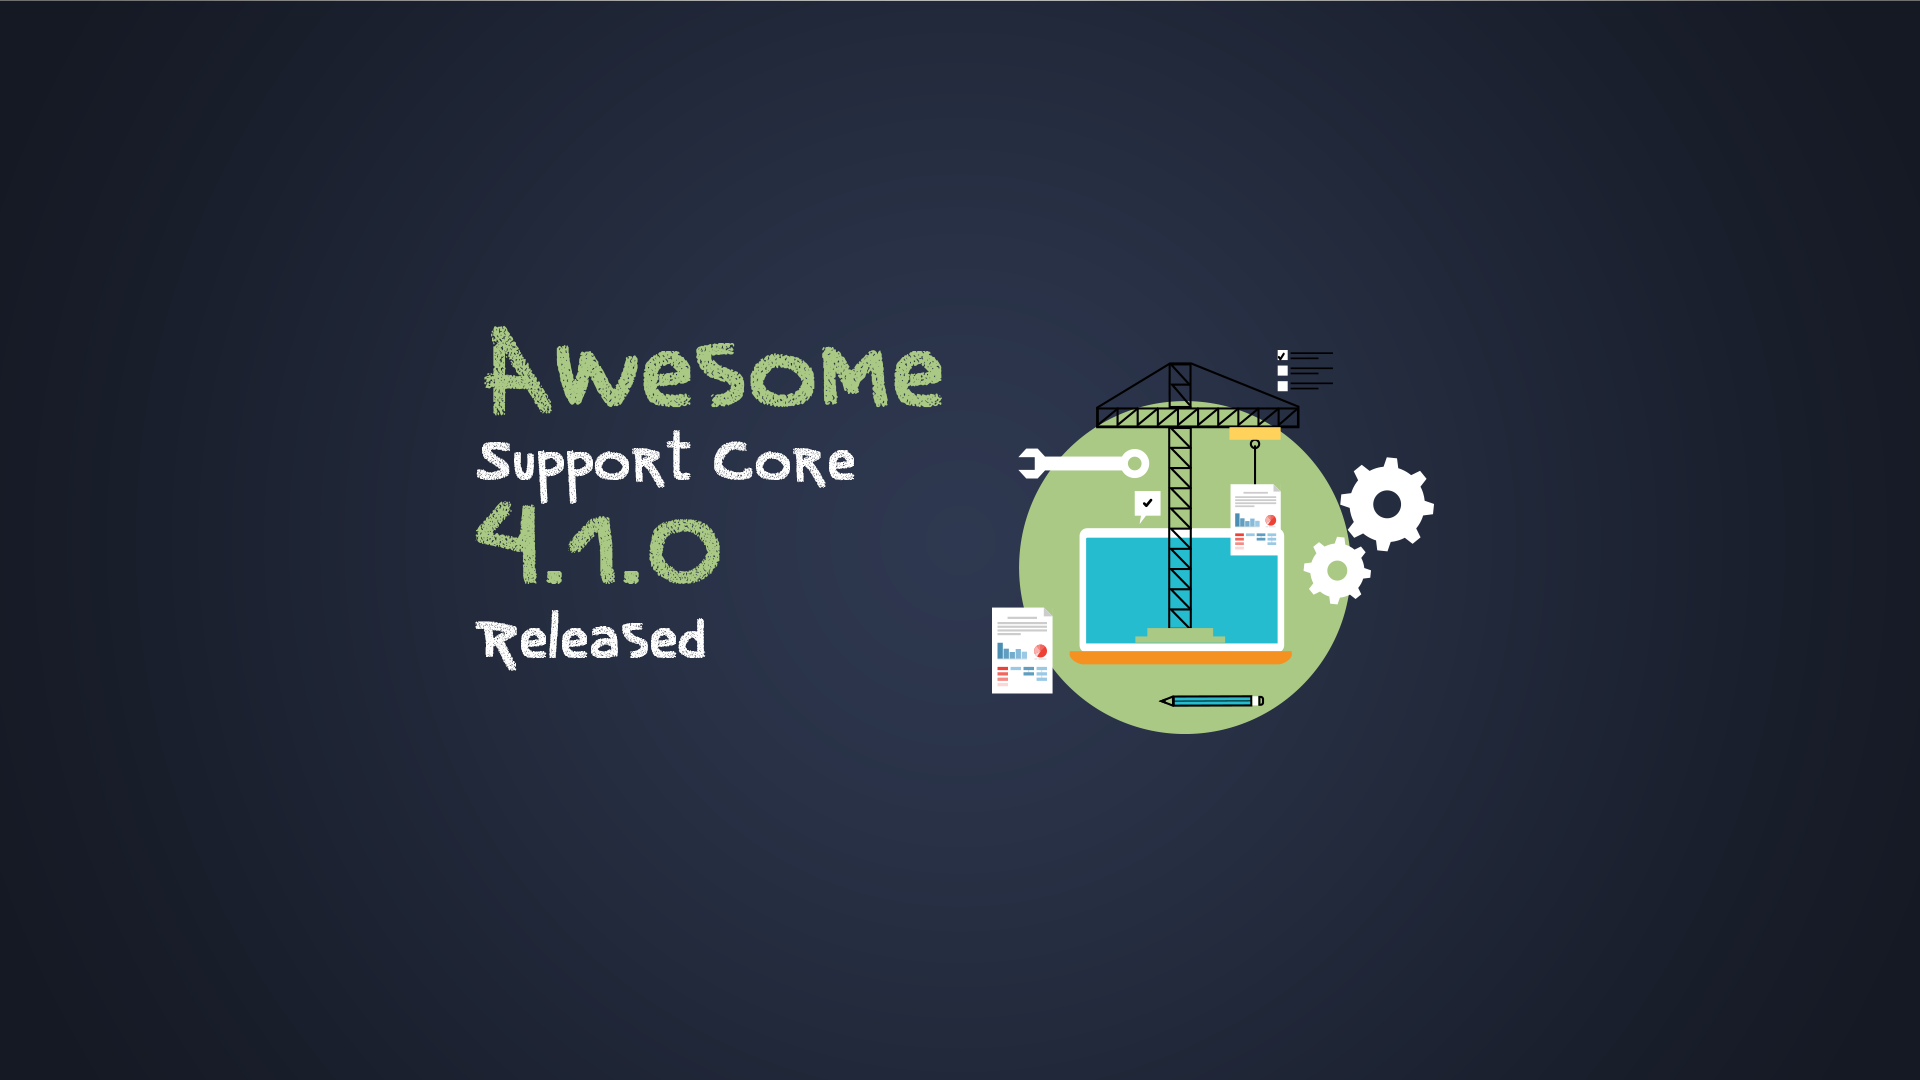 Awesome Support Core Update 4.1.0